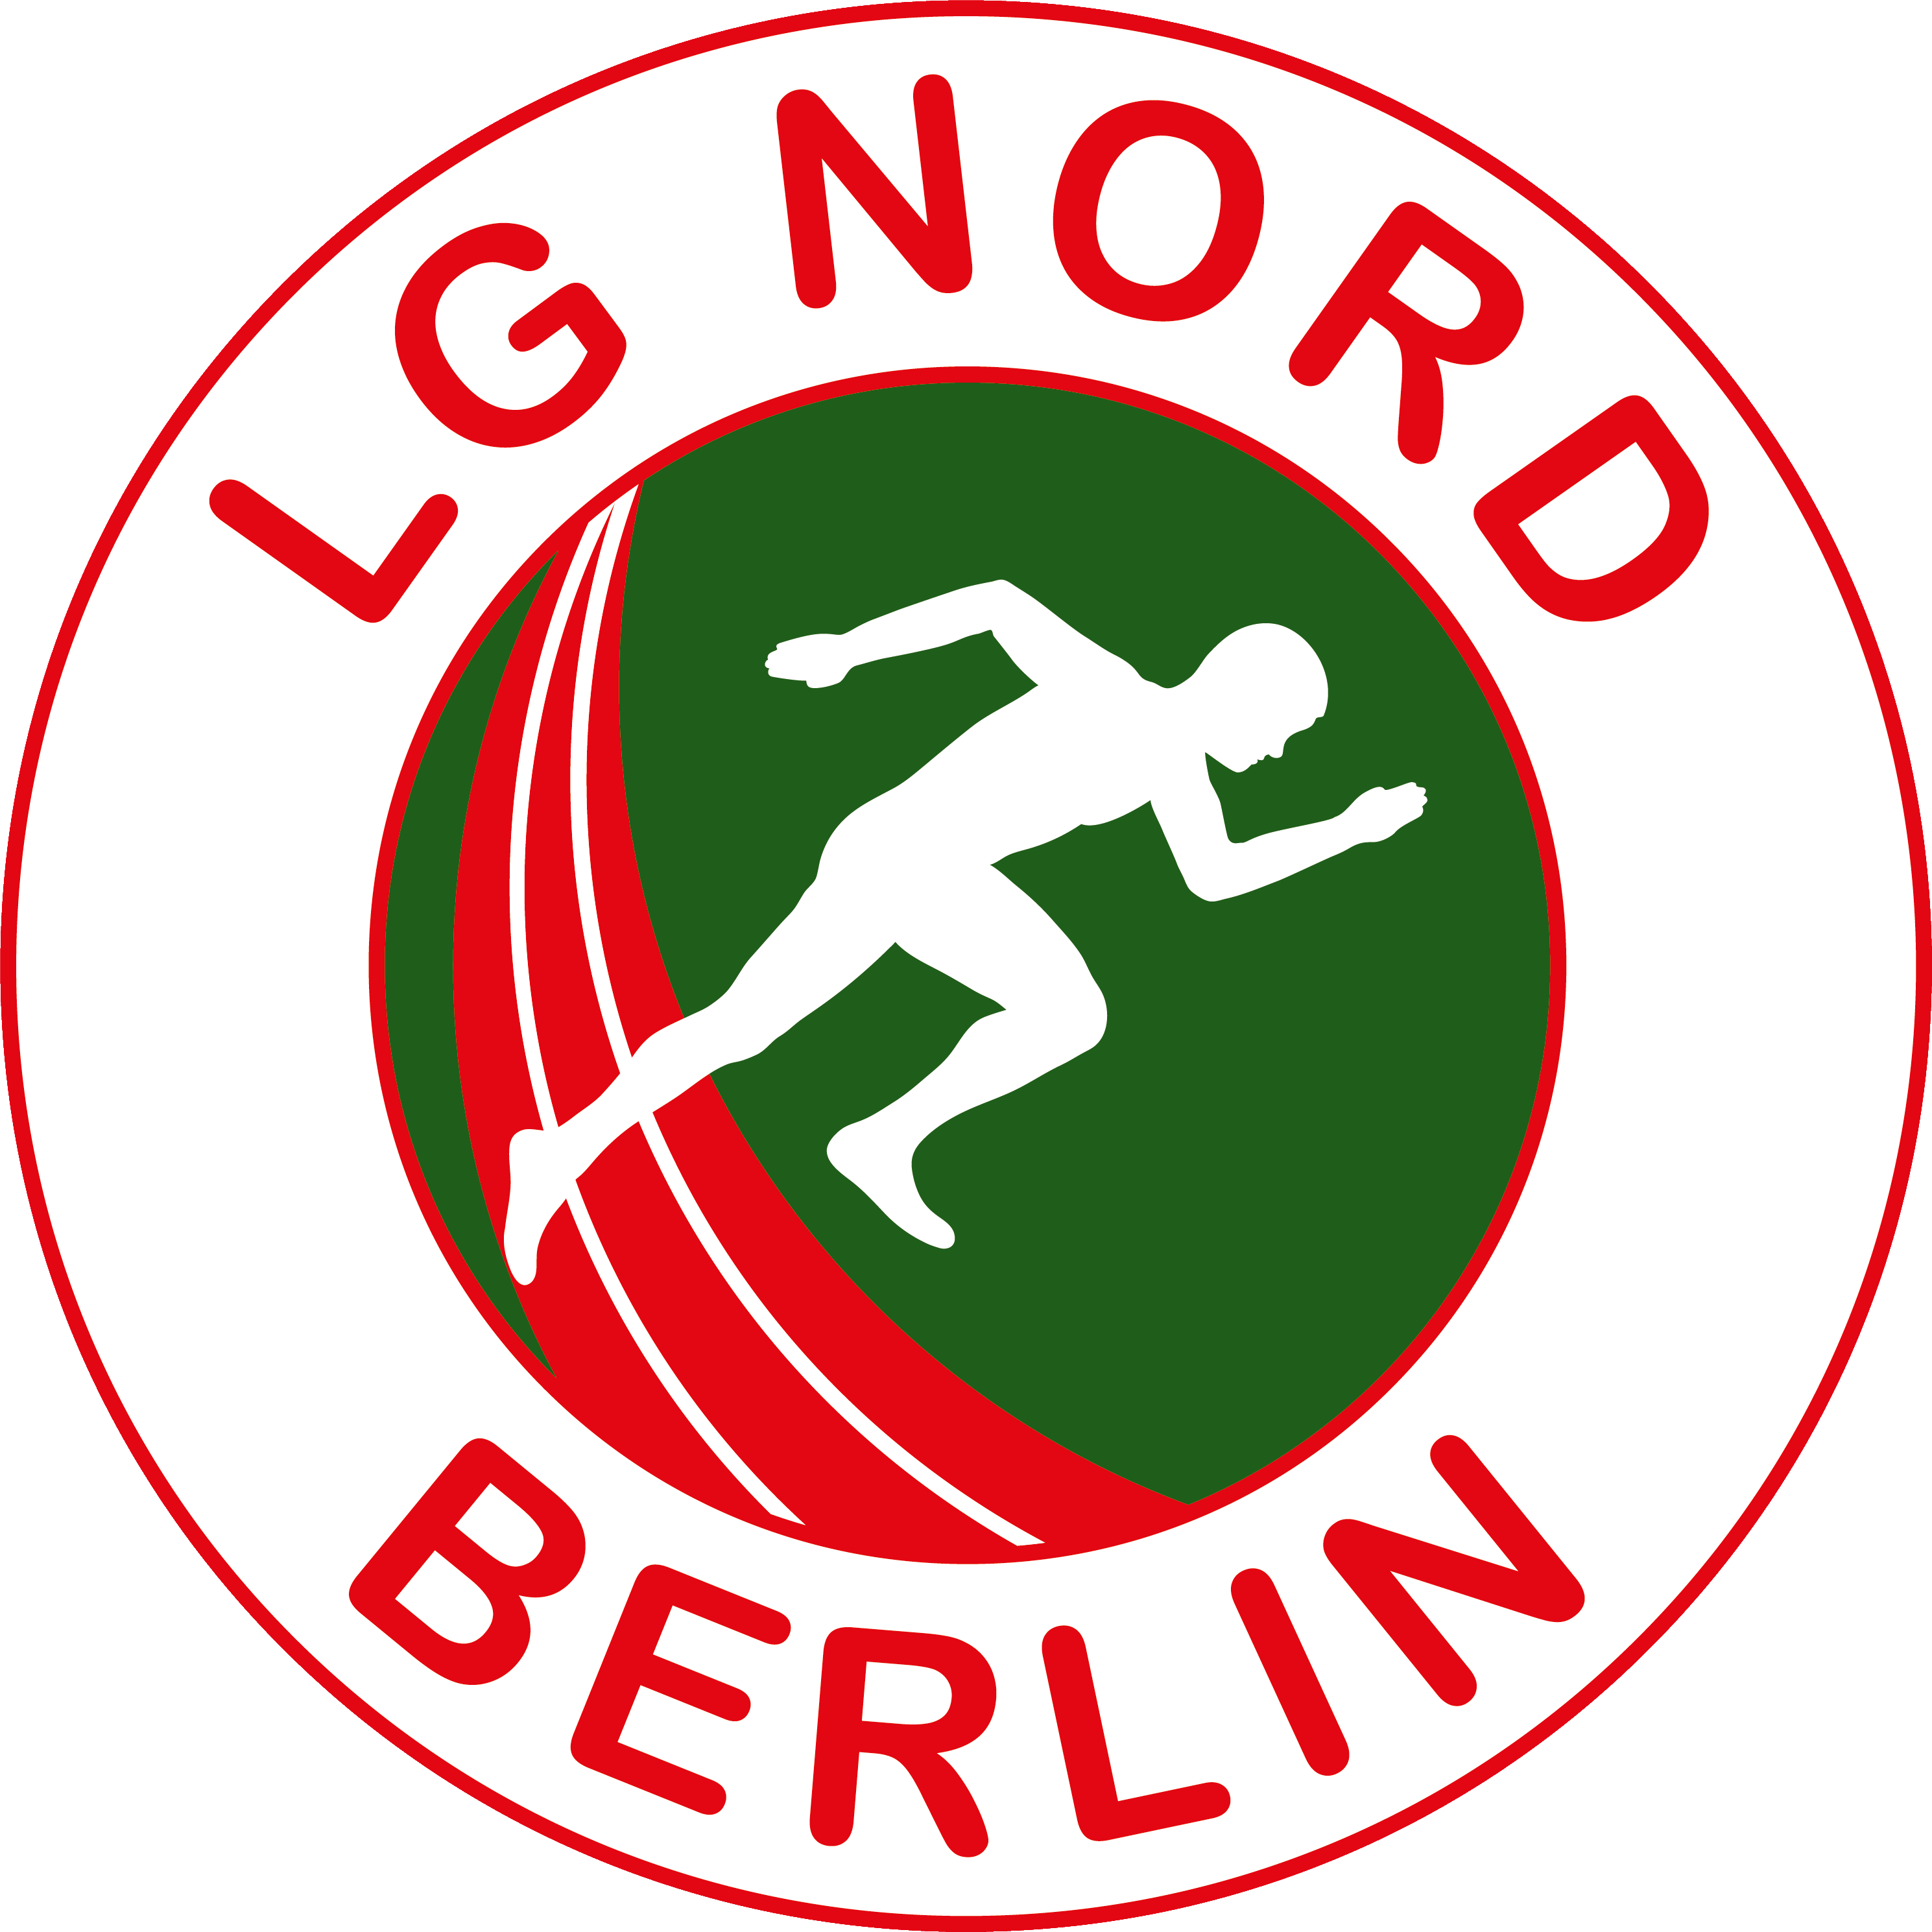 LG NORD Events Logo